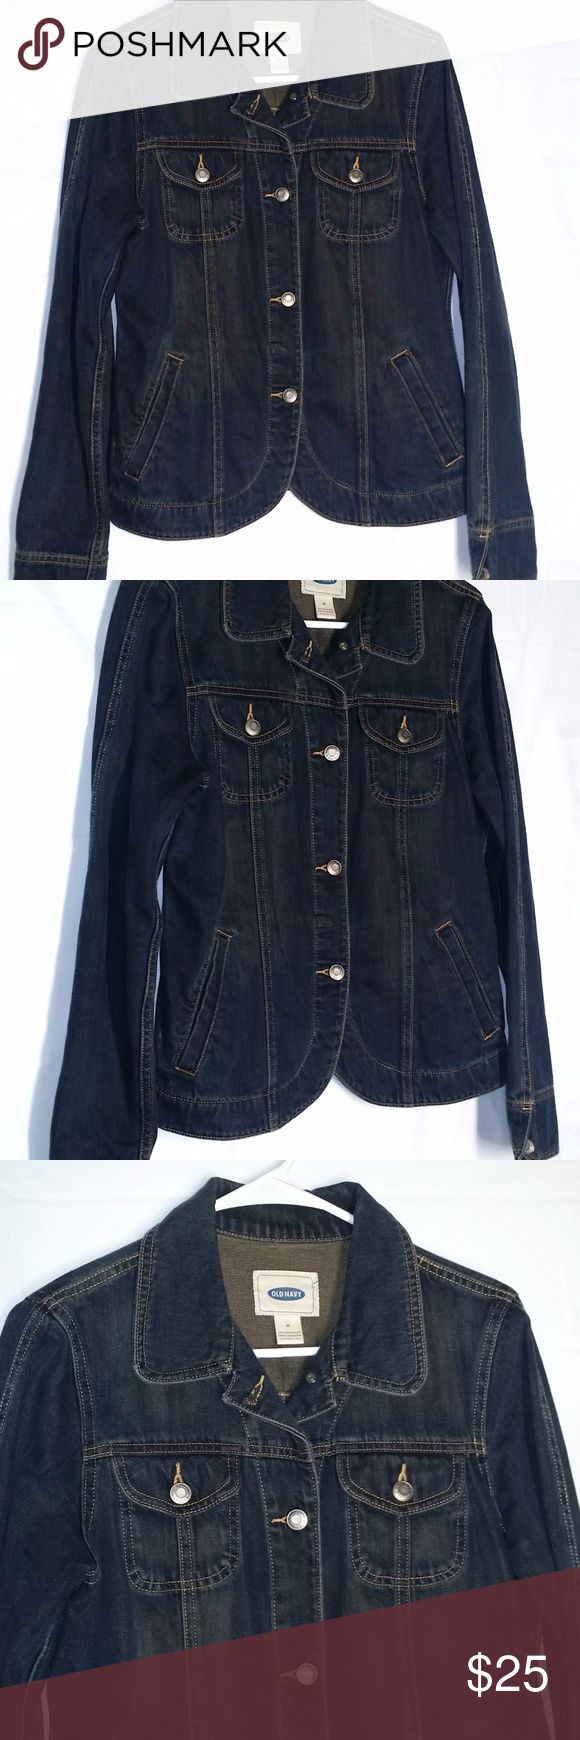 "Old Navy Jean Jacket Size M Rounded Hem Old Navy Medium Jean Jacket Rounded Hem Cotton Blue Denim Button Front Pockets Gently used condition  Unlined and buttons all the way down the front Machine wash cold & tumble dry Approx bust 39"" and length from top of shoulder to hem 22"" 4 pockets on the front 100% cotton Old Navy Jackets & Coats Jean Jackets"